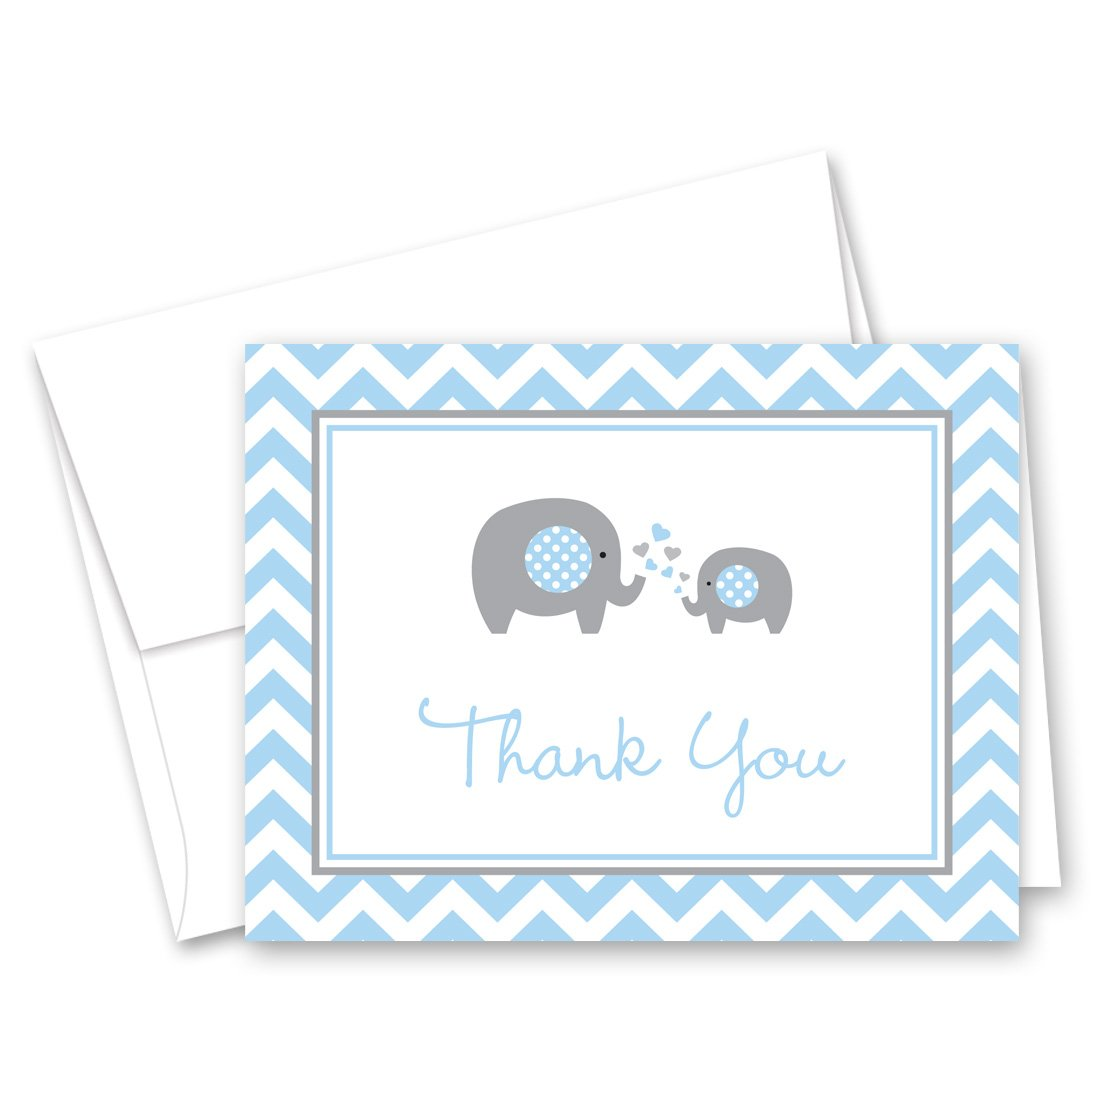 50 Cnt Grey Blue Chevron Elephant Baby Shower Thank You Cards